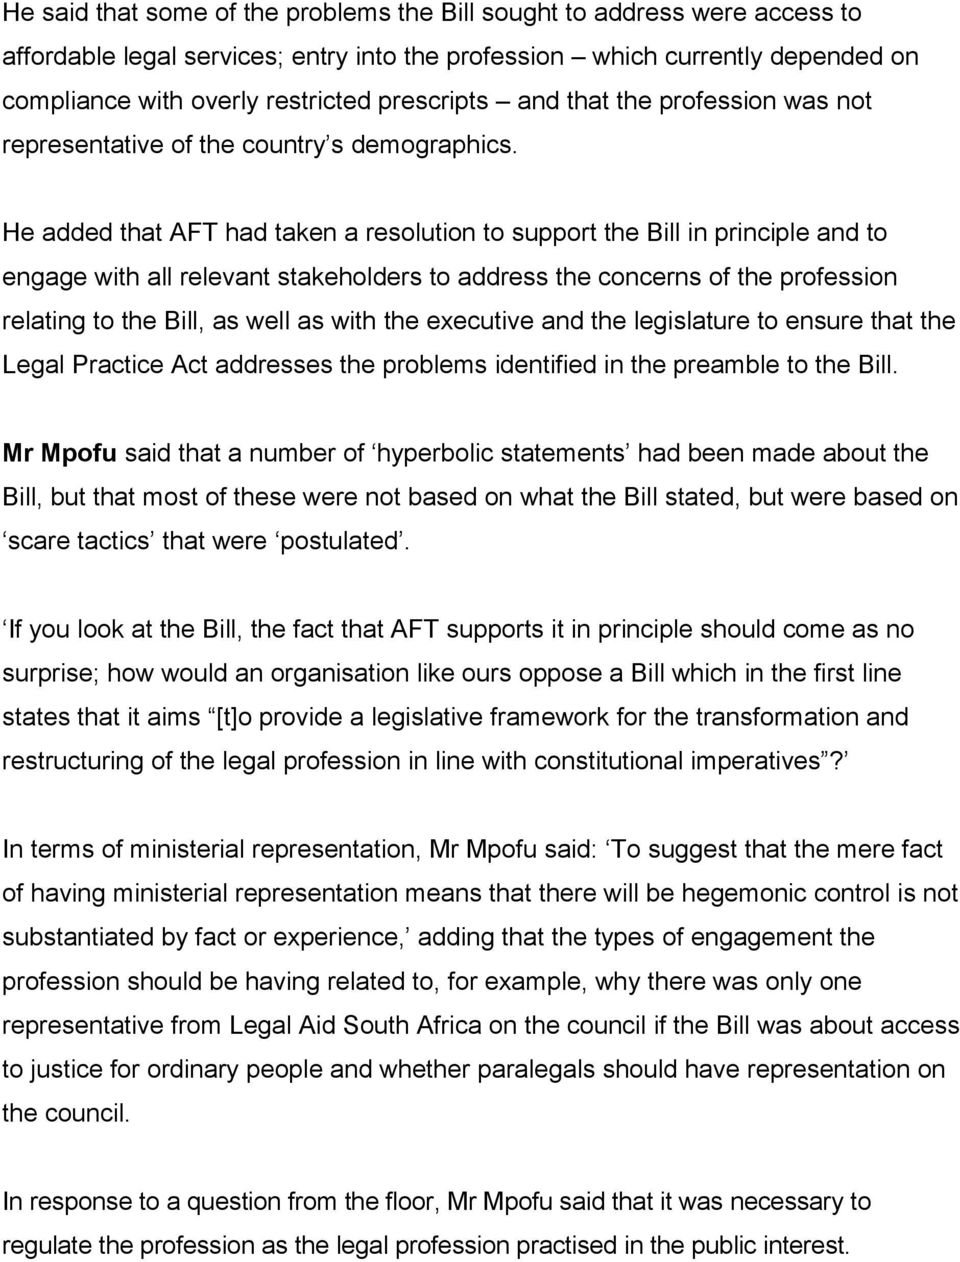 He added that AFT had taken a resolution to support the Bill in principle and to engage with all relevant stakeholders to address the concerns of the profession relating to the Bill, as well as with